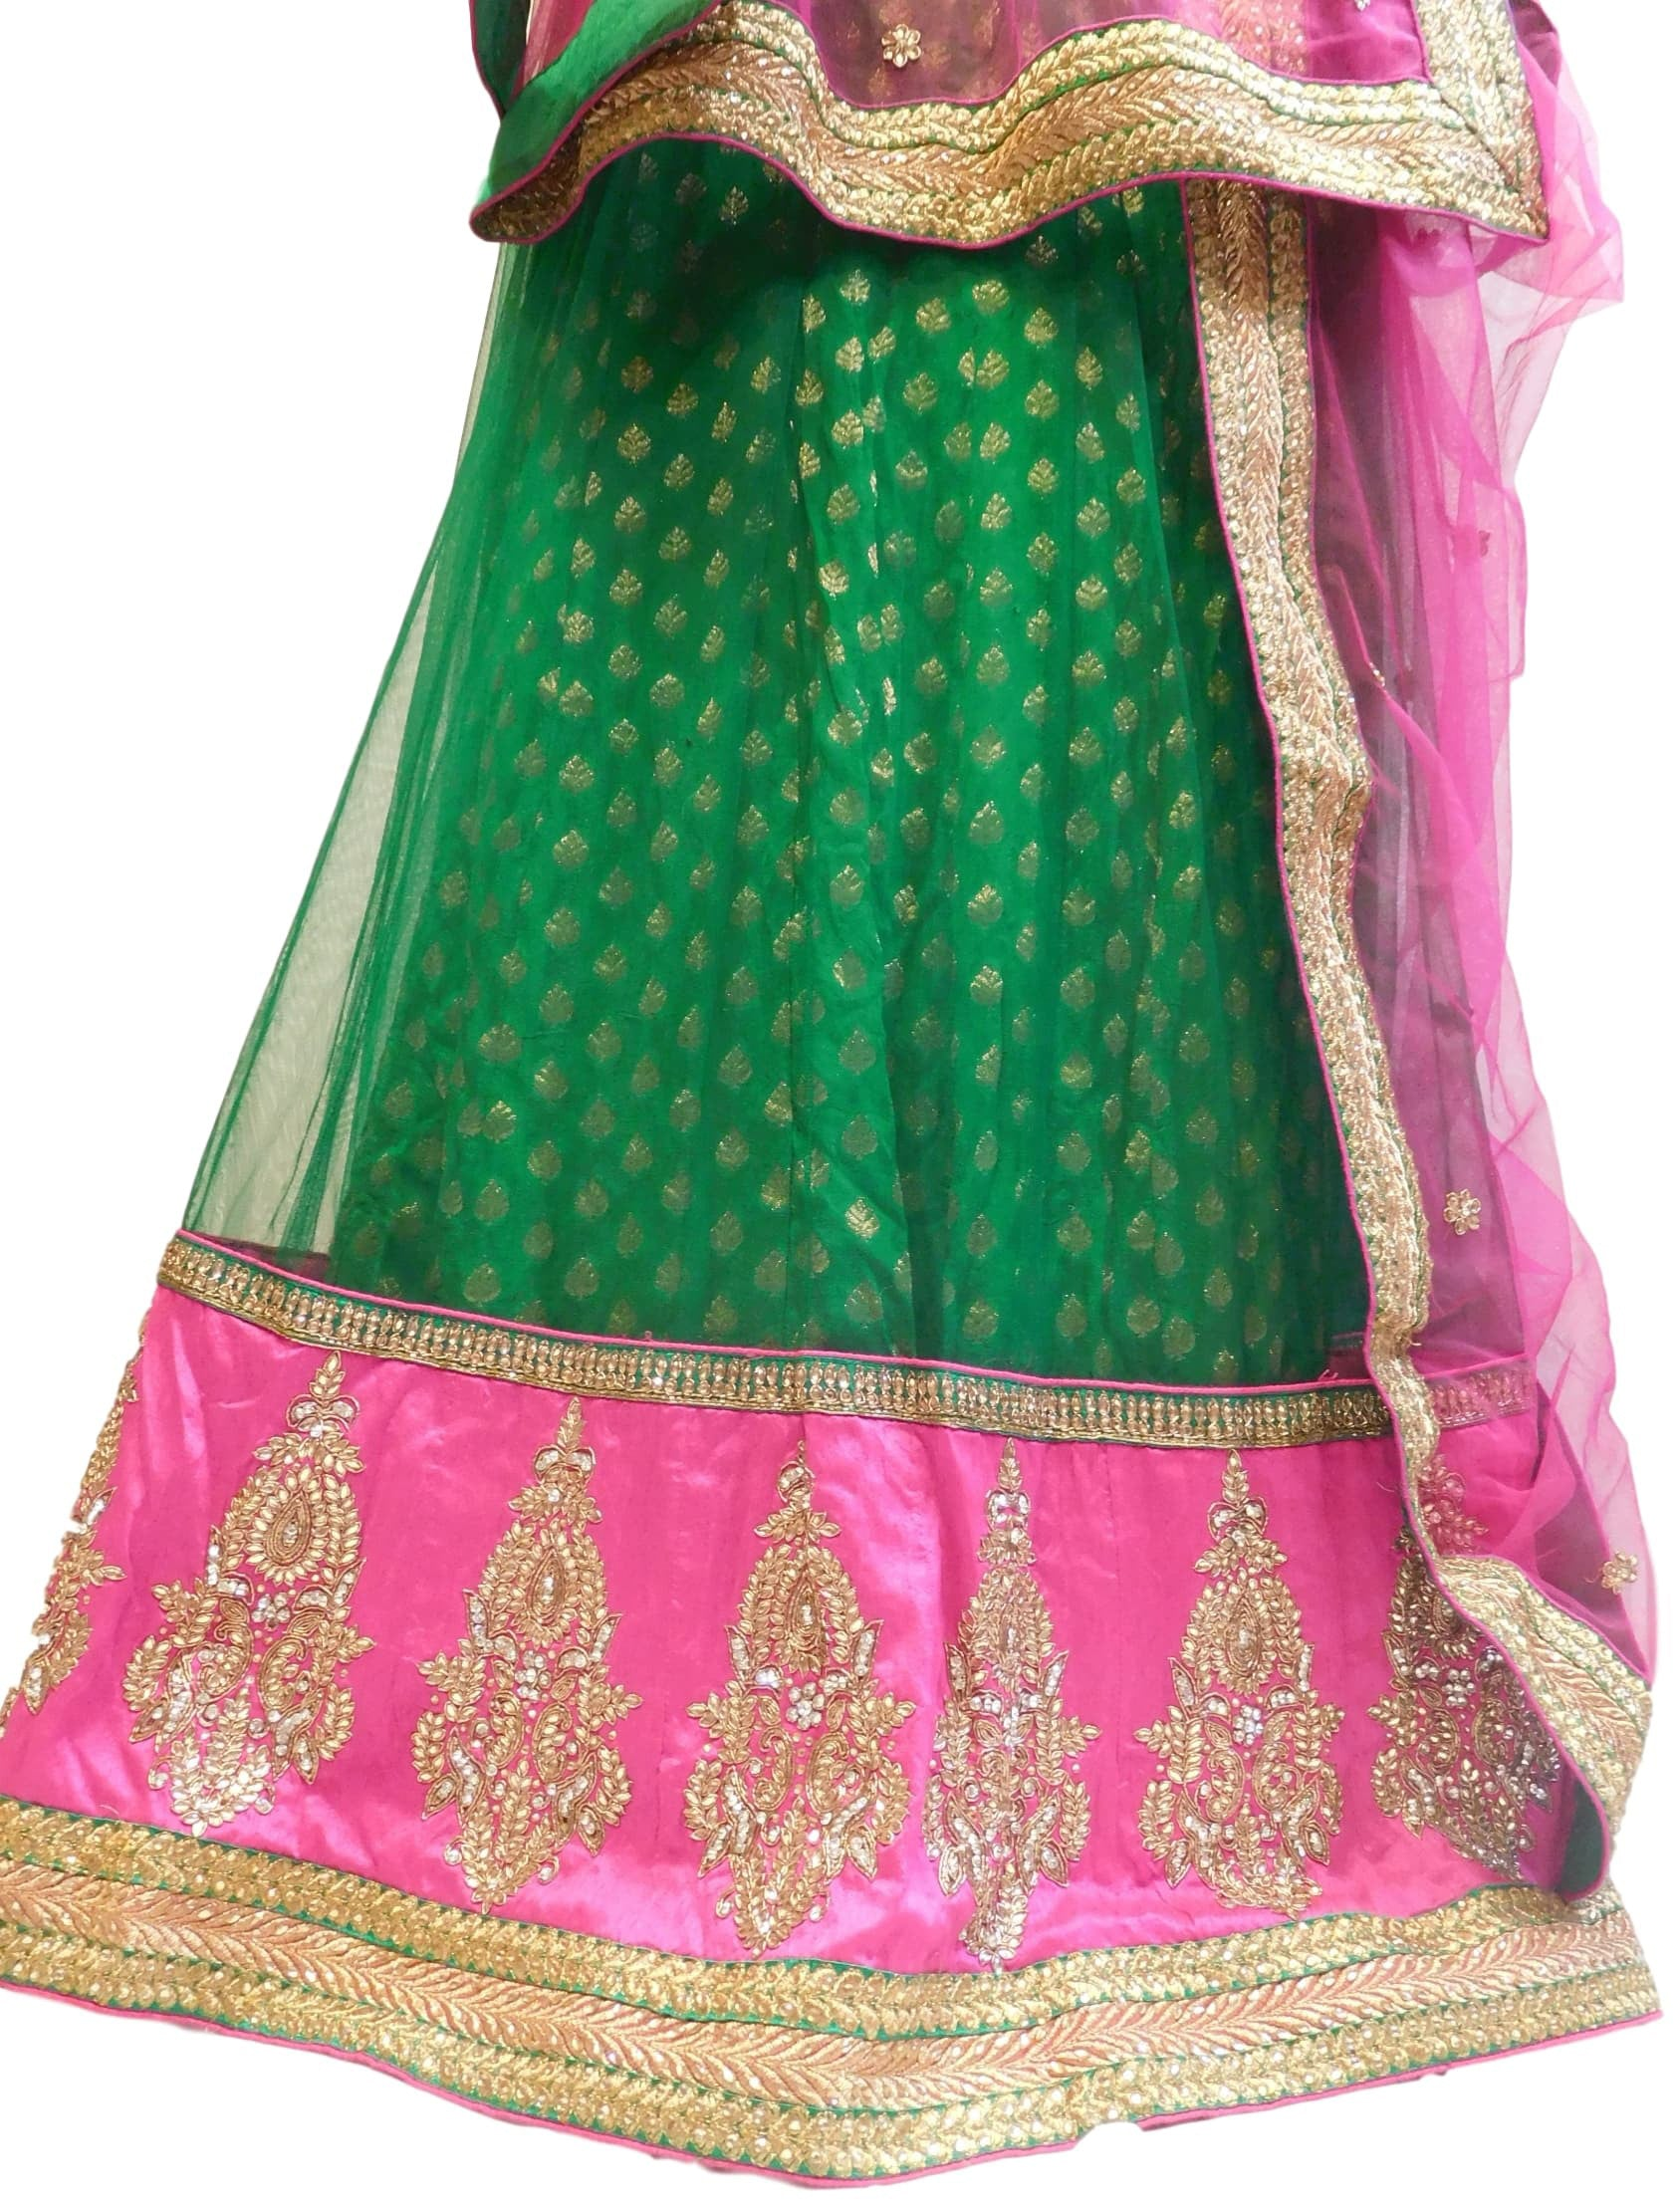 Green & Pink Designer Bridal Hand Embroidery Work Lahenga With Net Dupatta & Silk Blouse